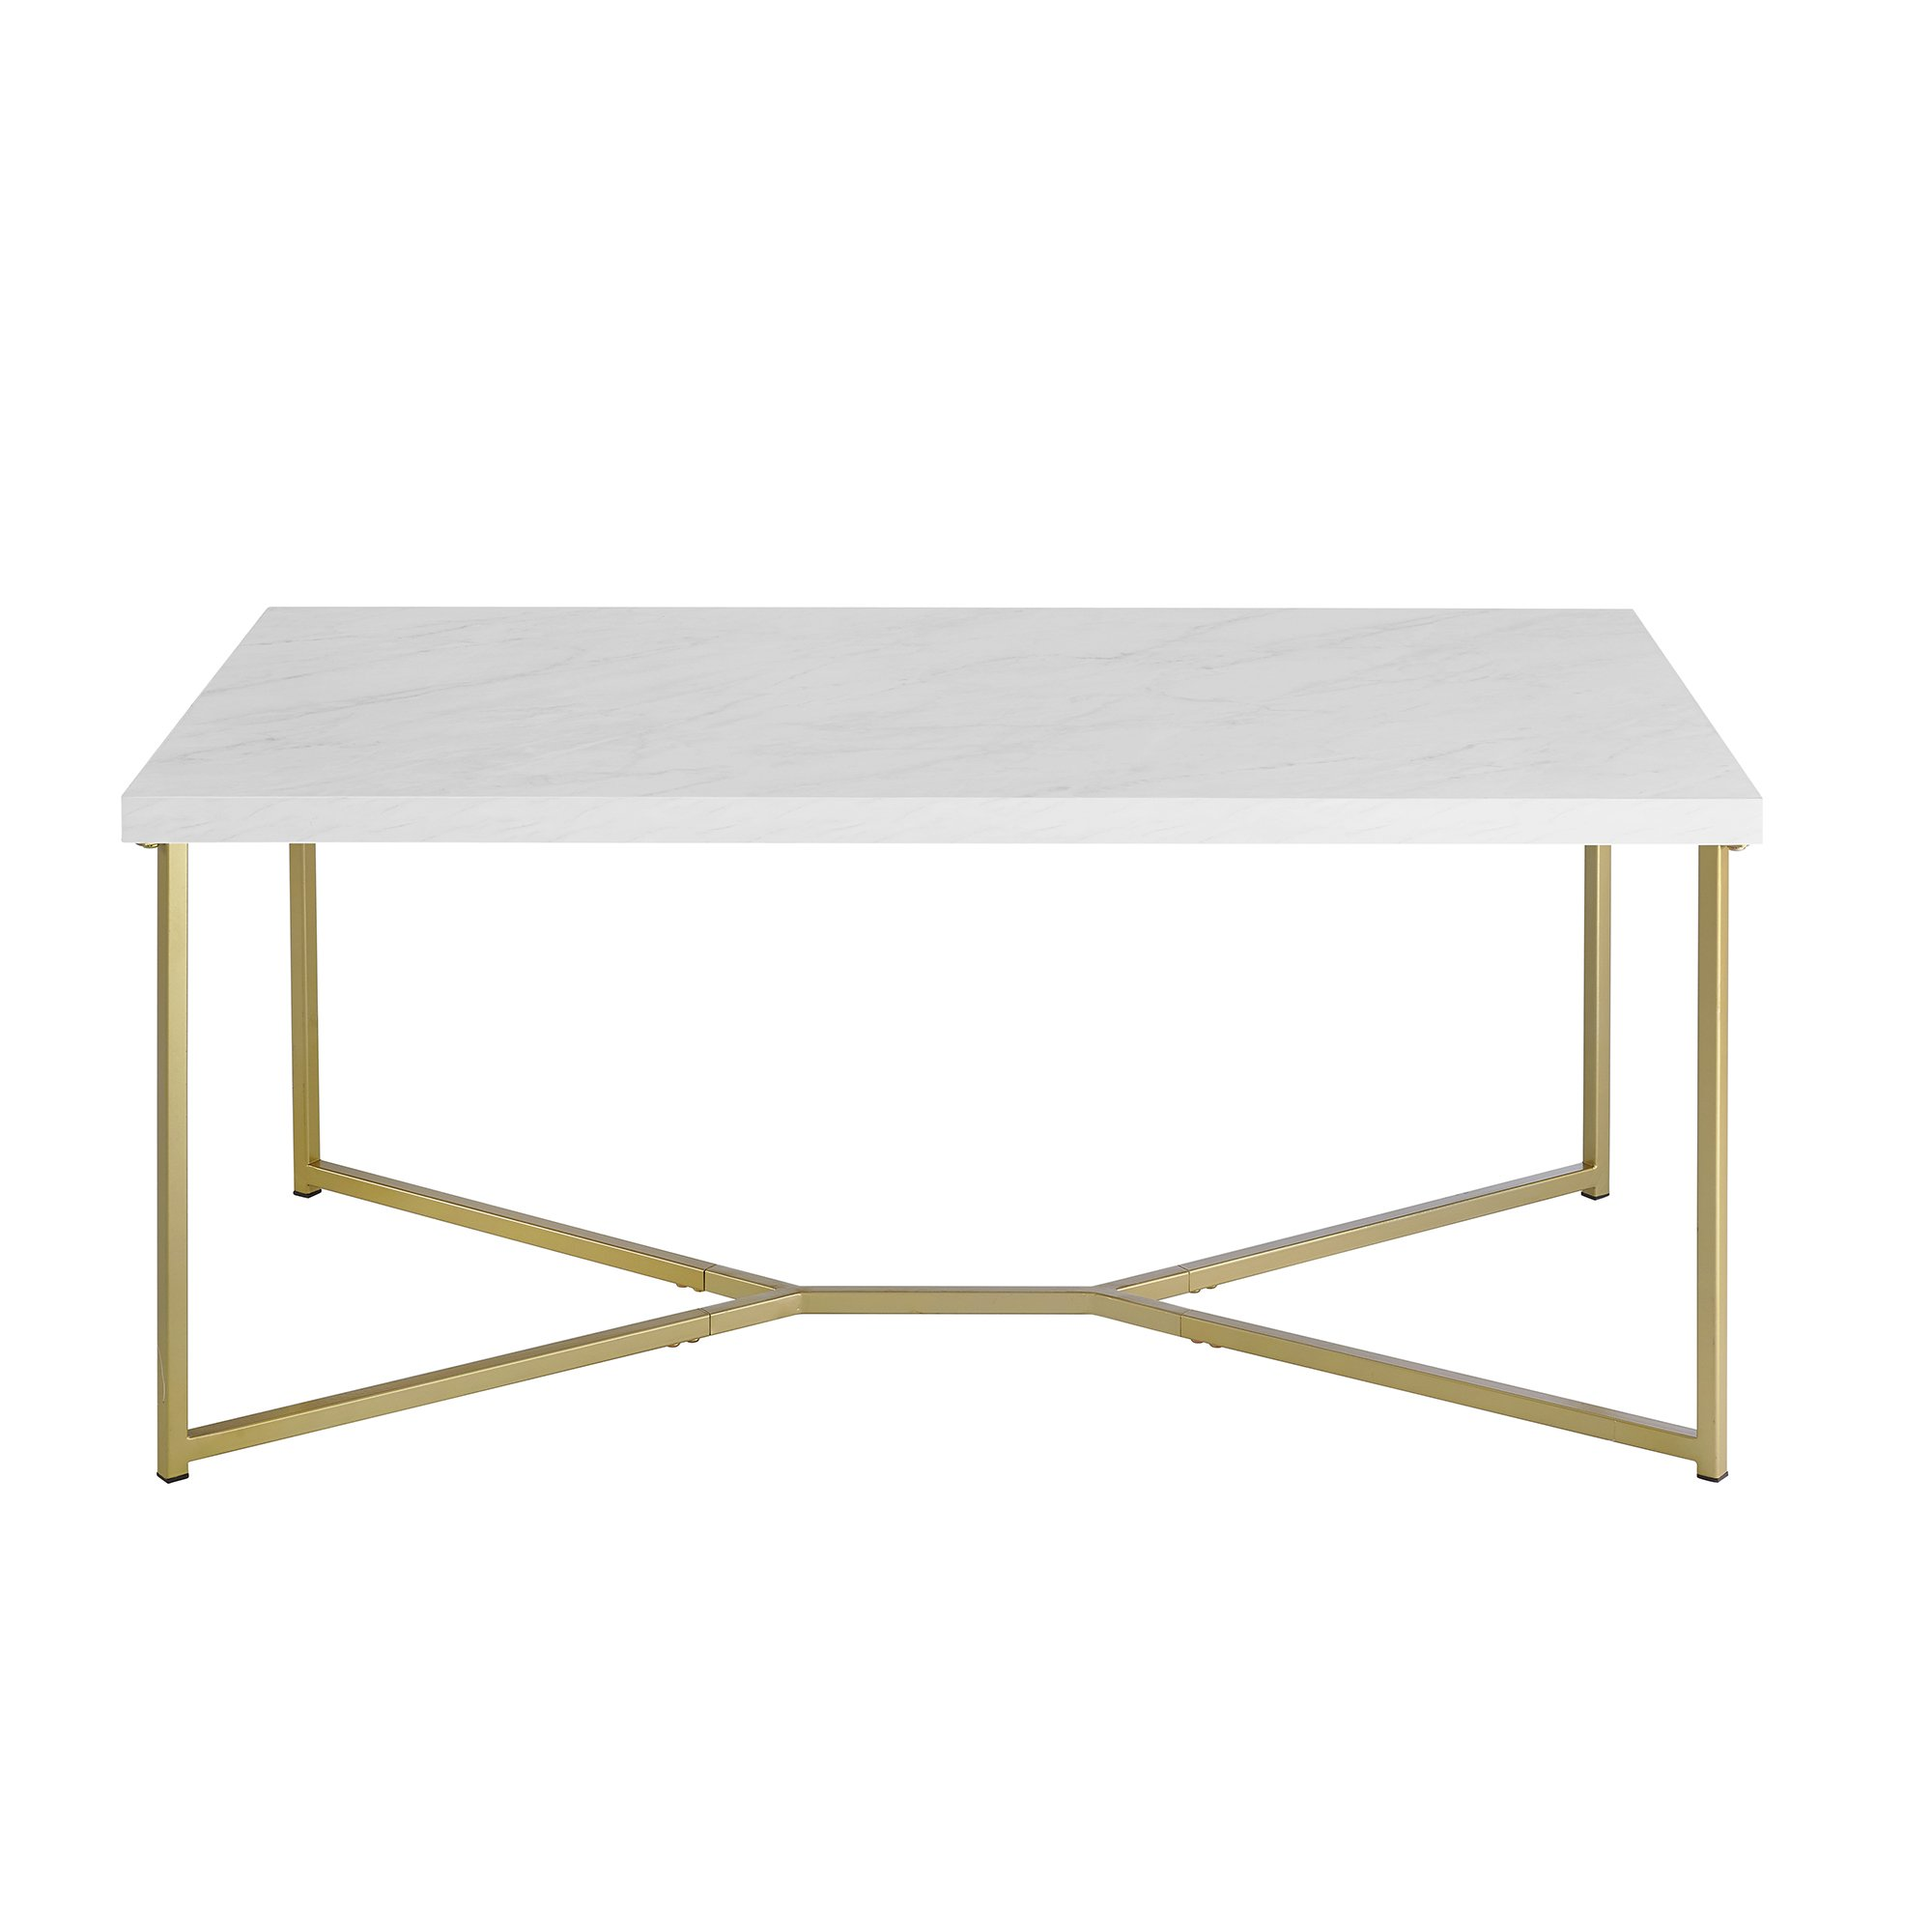 WE Furniture Short Rectangular Coffee Table Faux White Marble Top Gold Base by WE Furniture